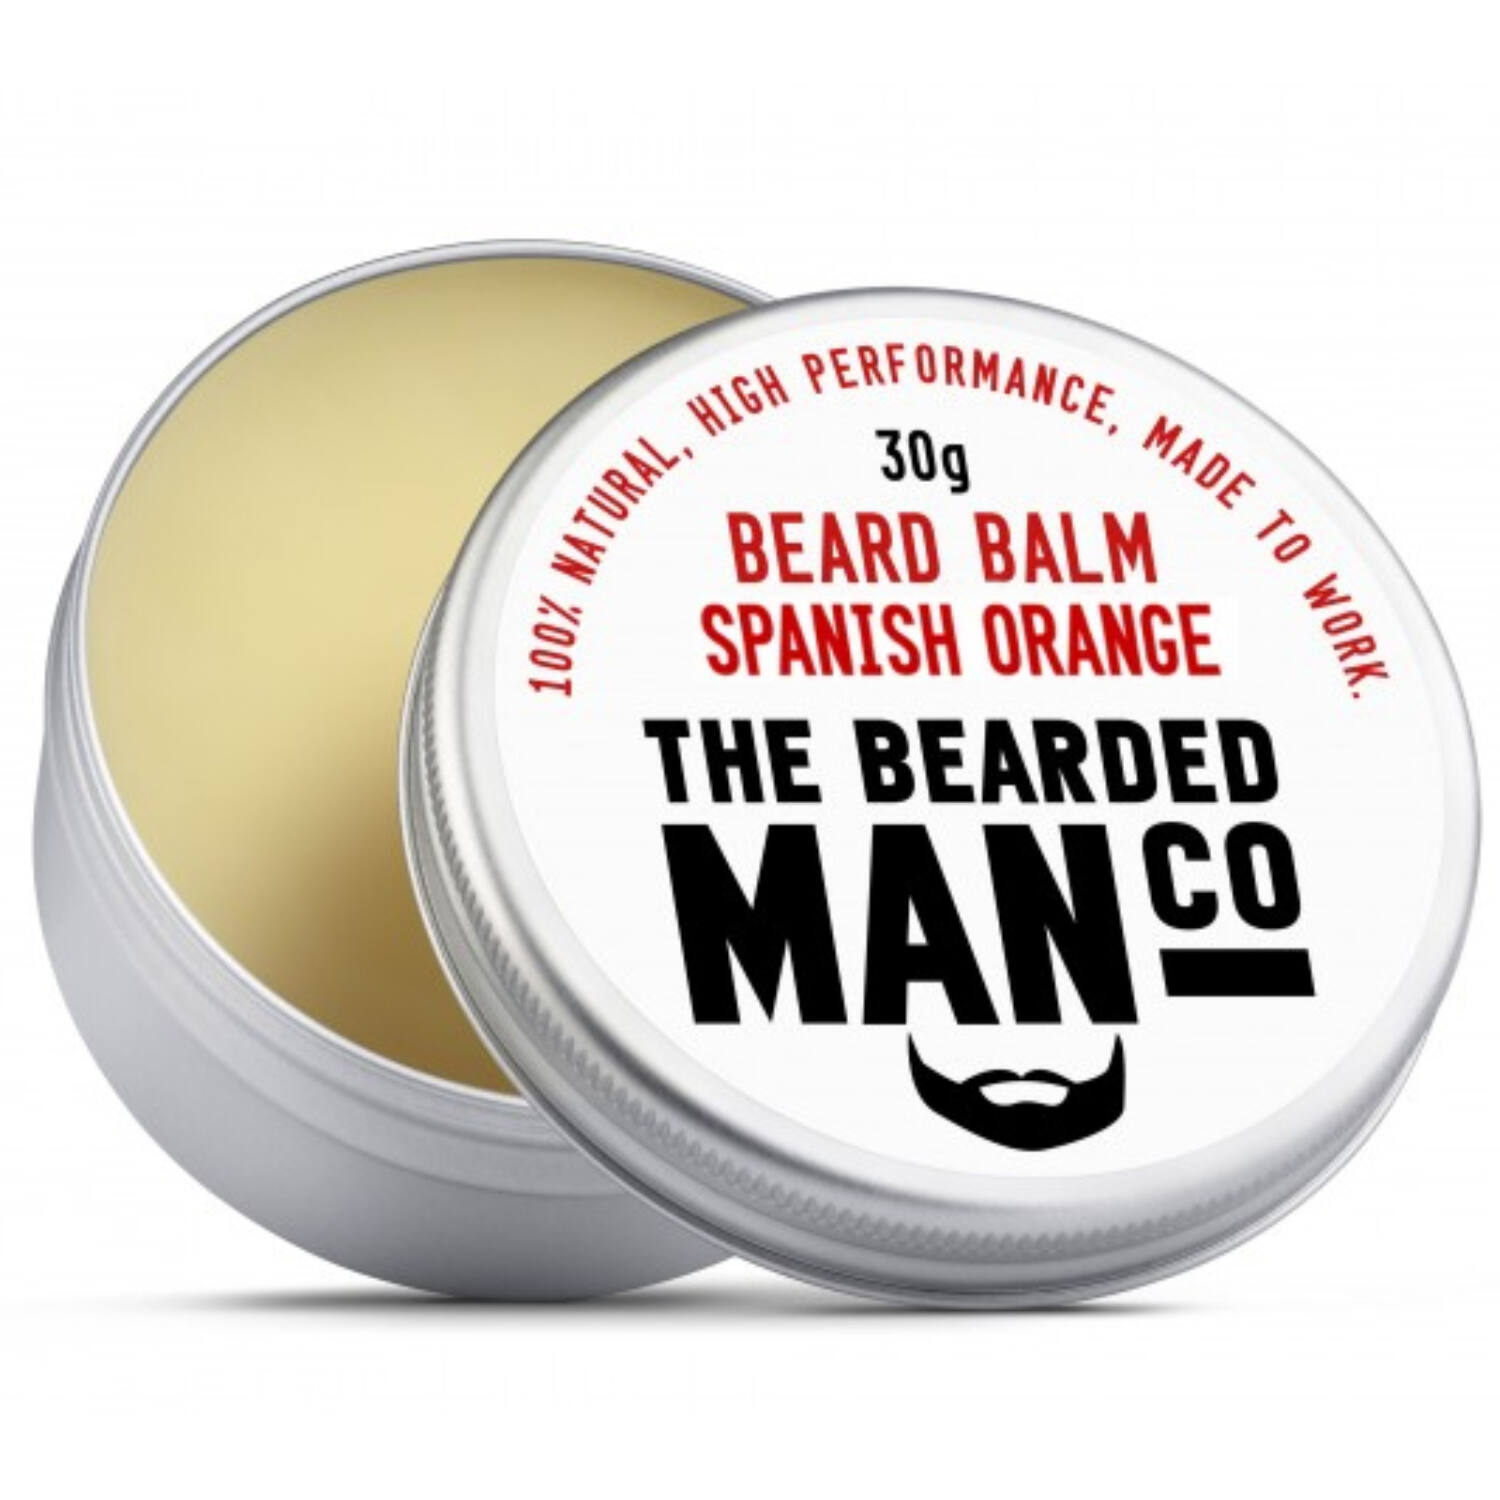 the bearded man company spanish orange szakállbalzsam